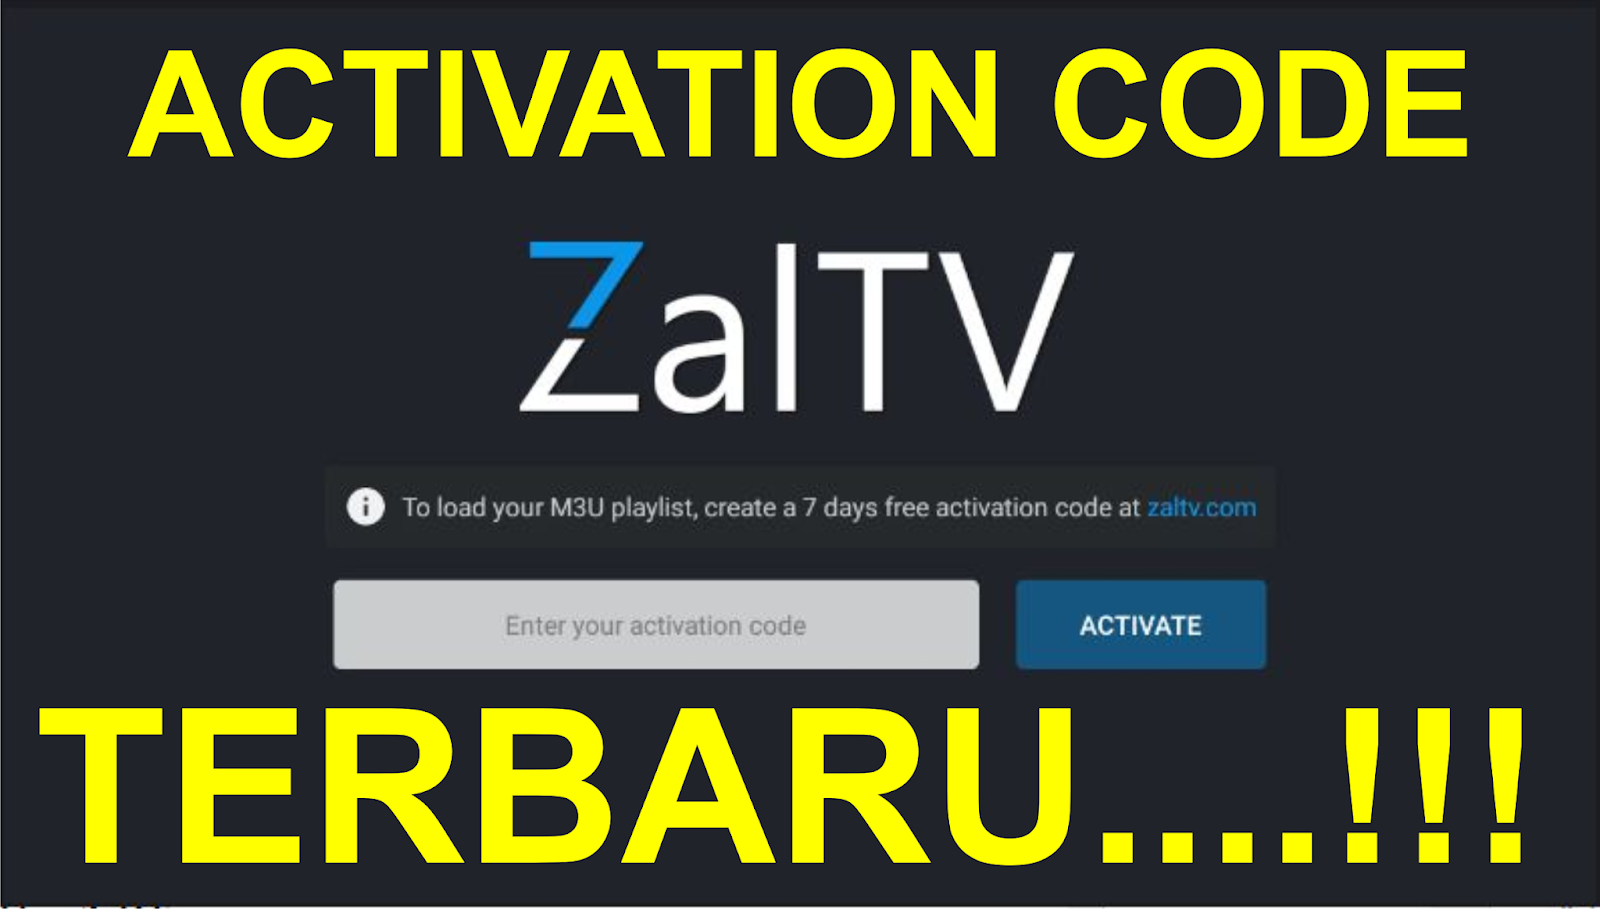 Zaltv activation code 2019 dewasa | ZALTV CODE ACTIVATION 2019  2019